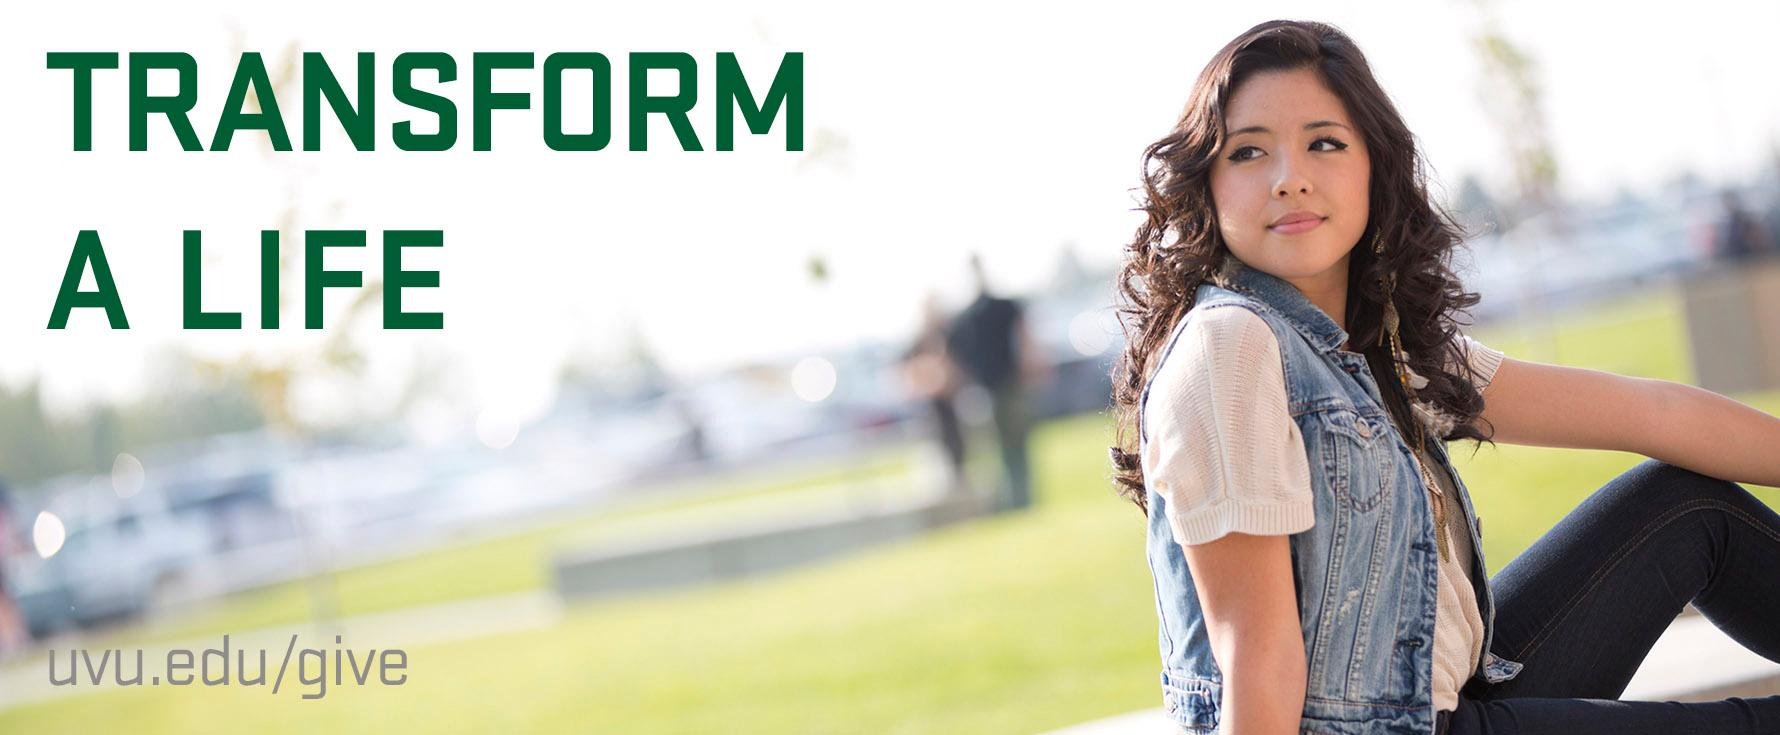 Transform a life. Make a gift to UVU.